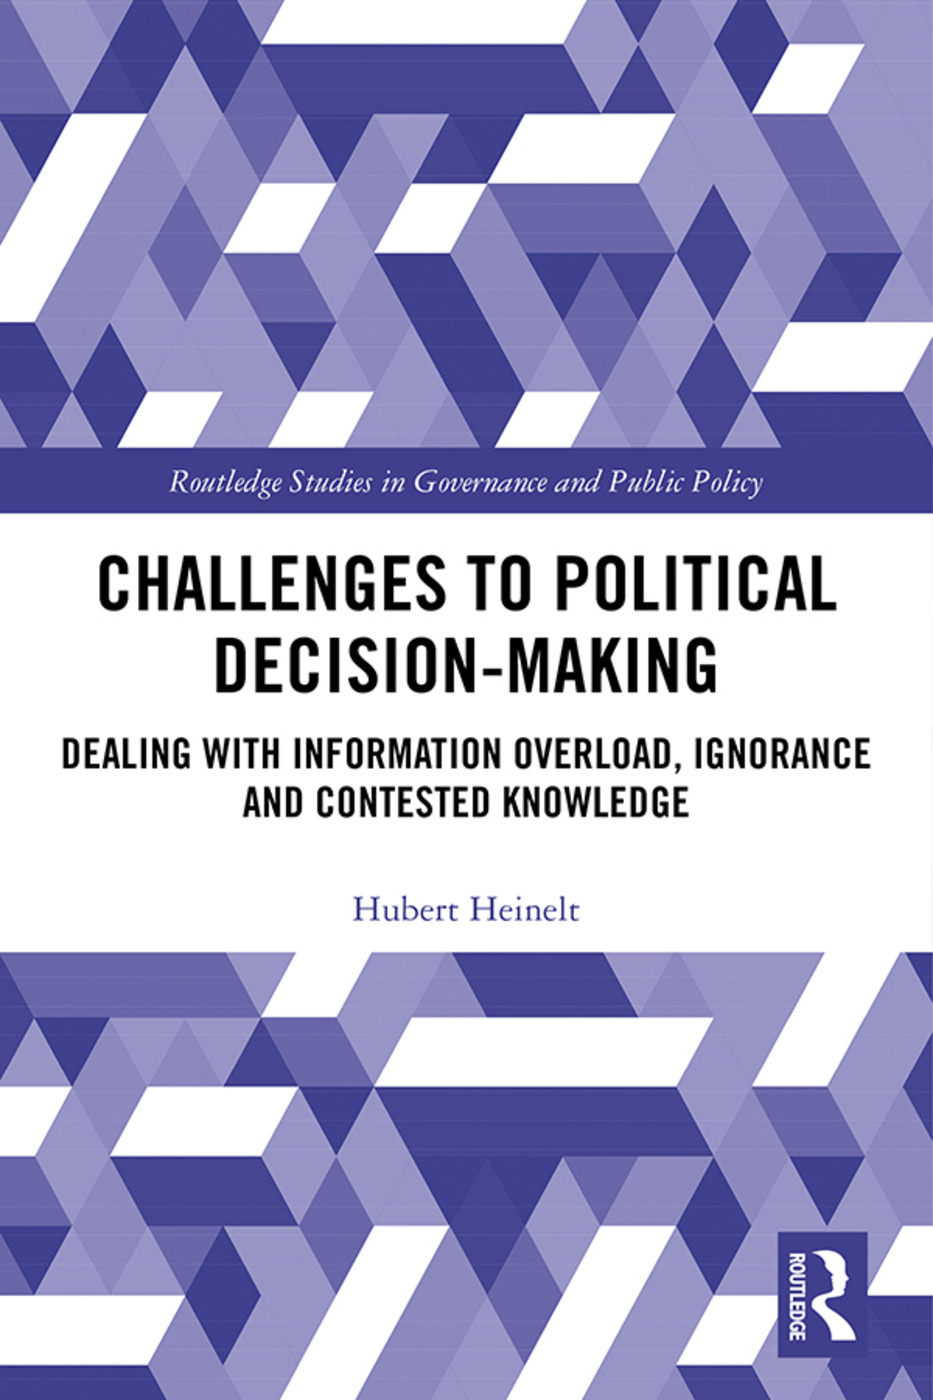 Challenges to Political Decision-making: Dealing with Information Overload, Ignorance and Contested Knowledge book cover